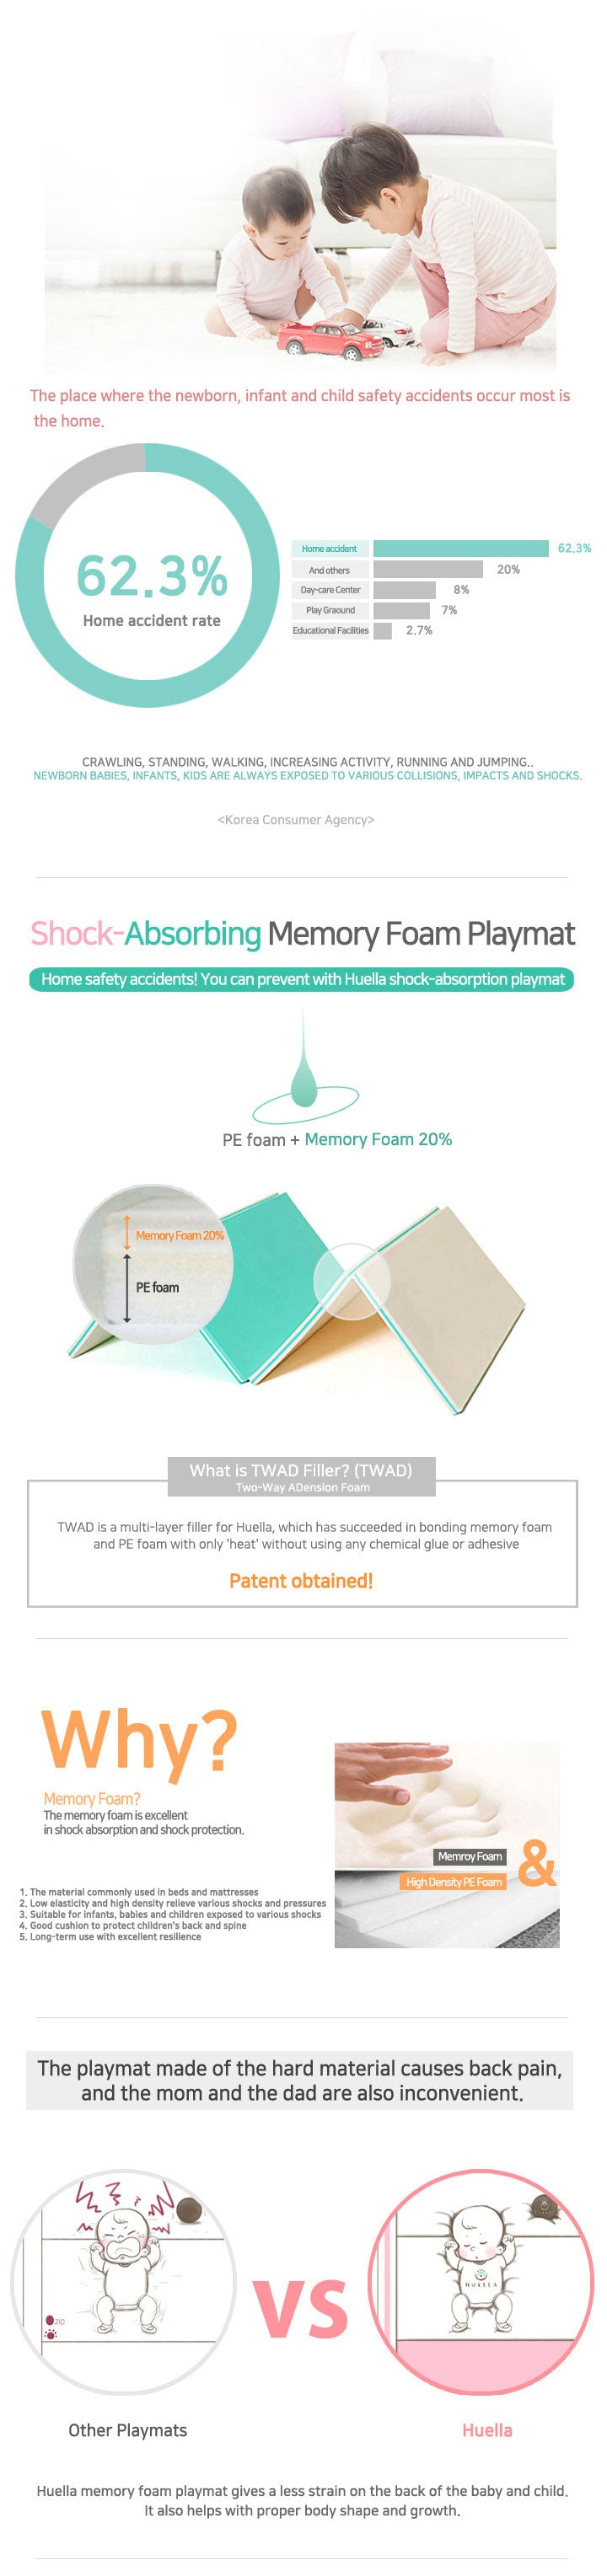 Huella - Patented Memory Foam Playmat Rolling Mattress